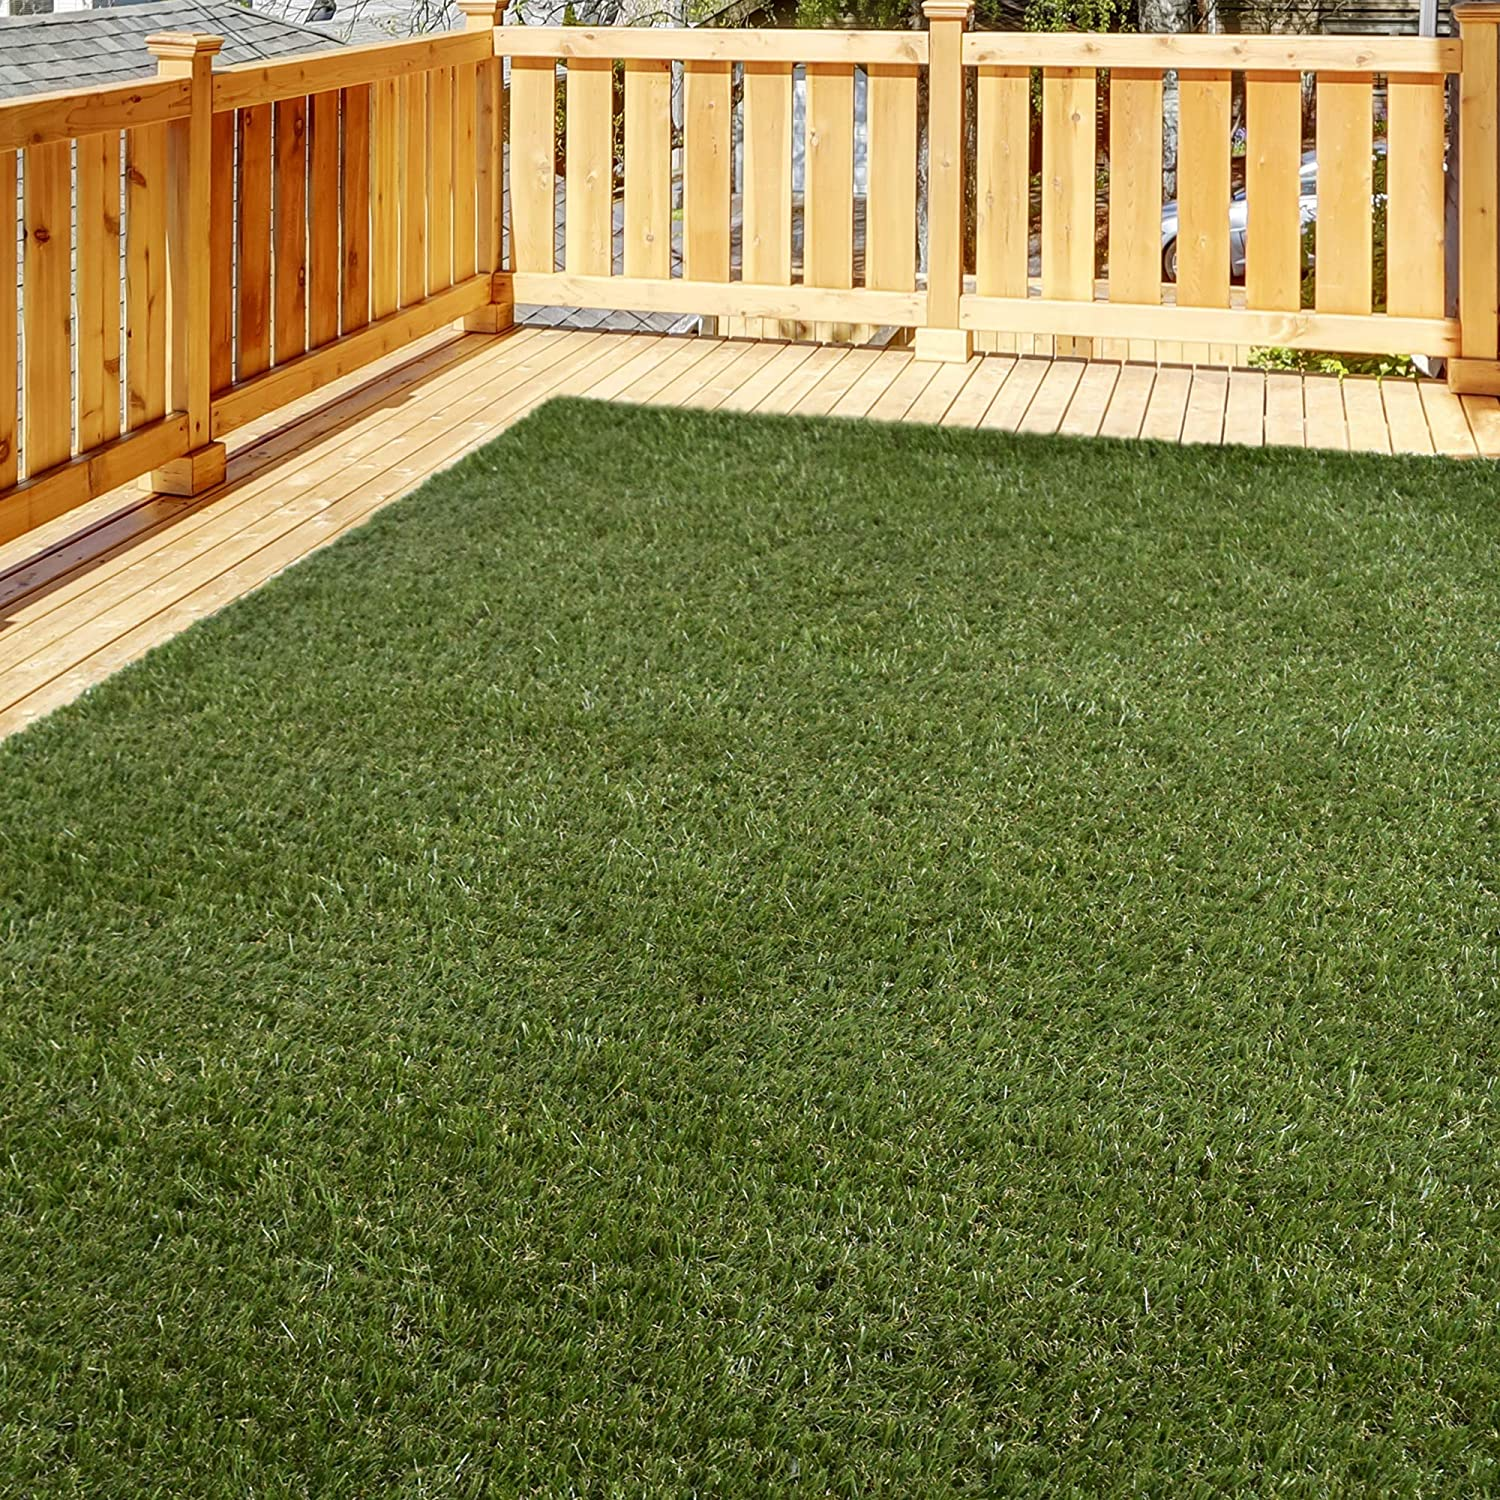 iCustomRug Thick Turf Rugs and Factory outlet Runners 10' Max 41% OFF Pet Friendly Ar 12' X